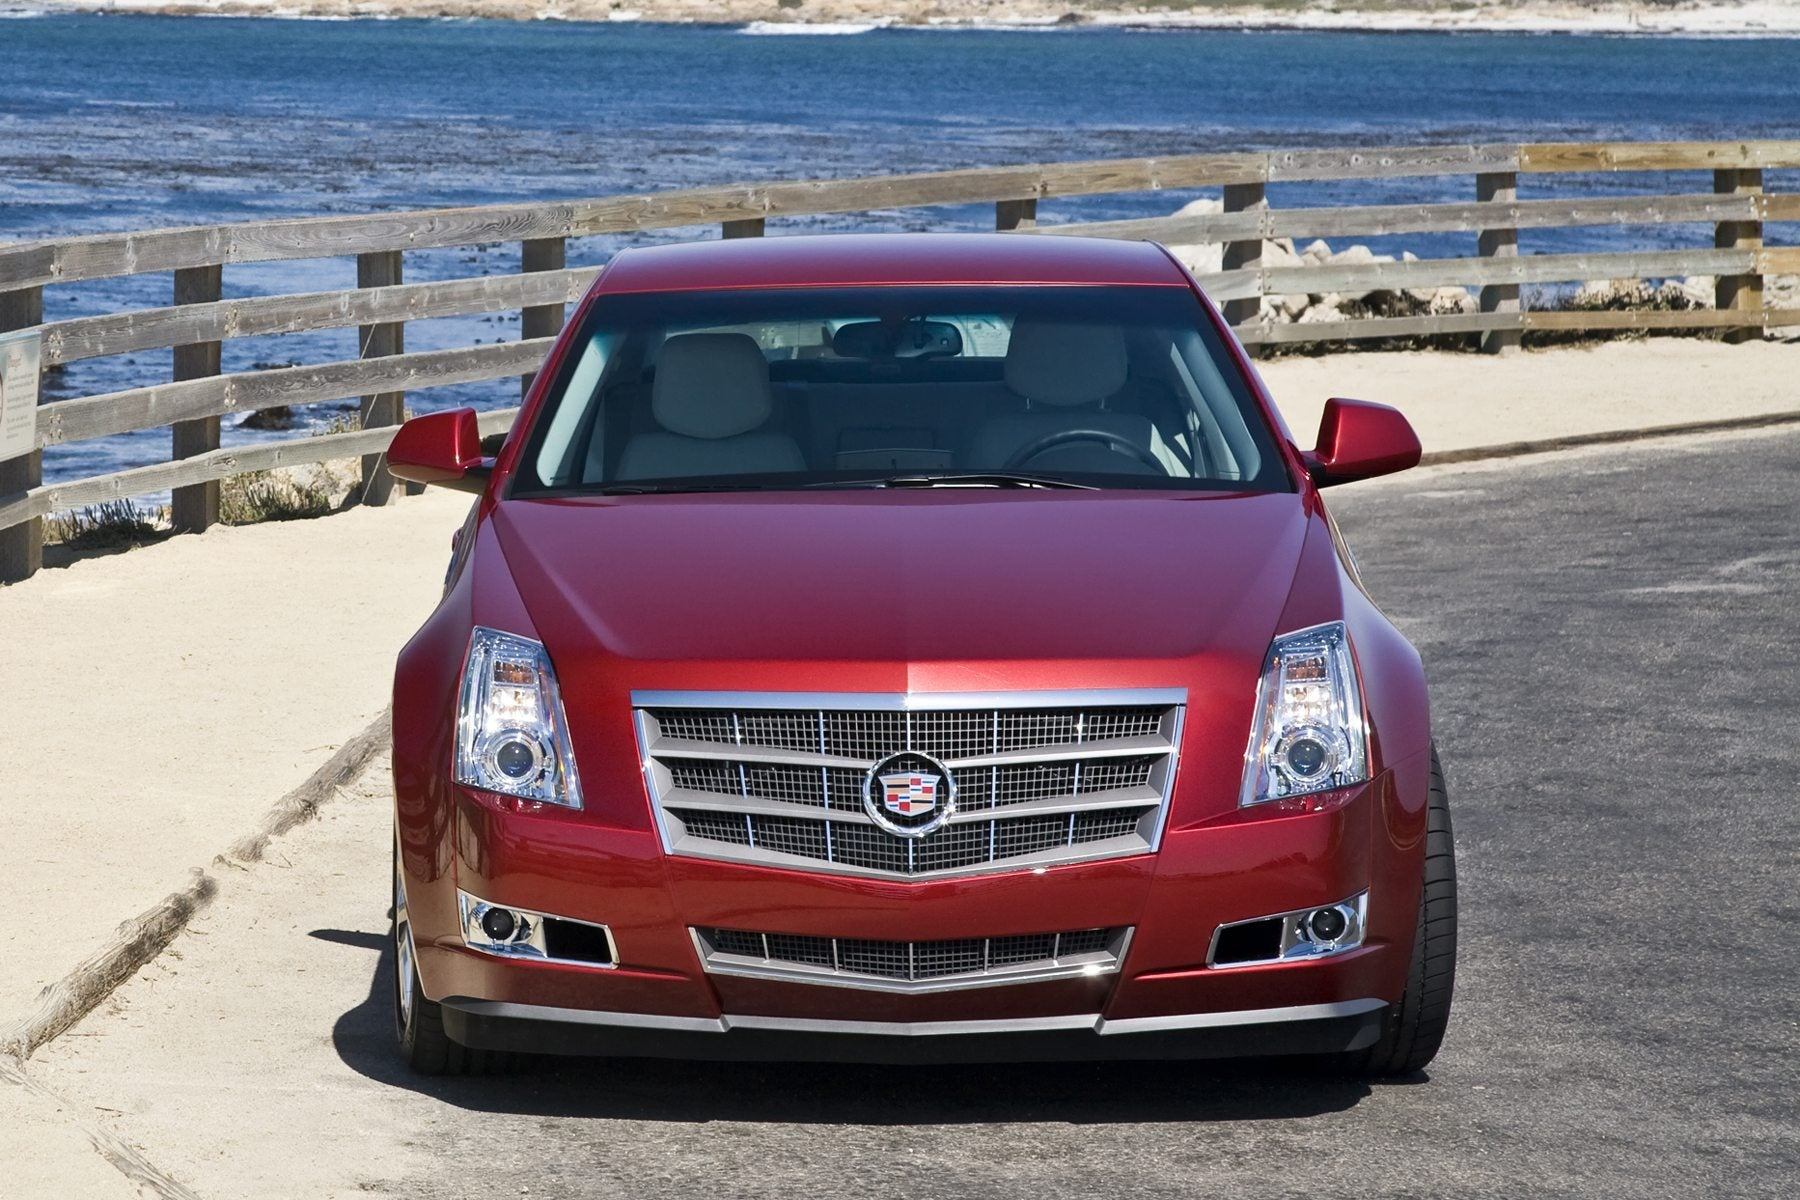 Test Drive a Cadillac & Earn 7,500 American Airlines Miles!